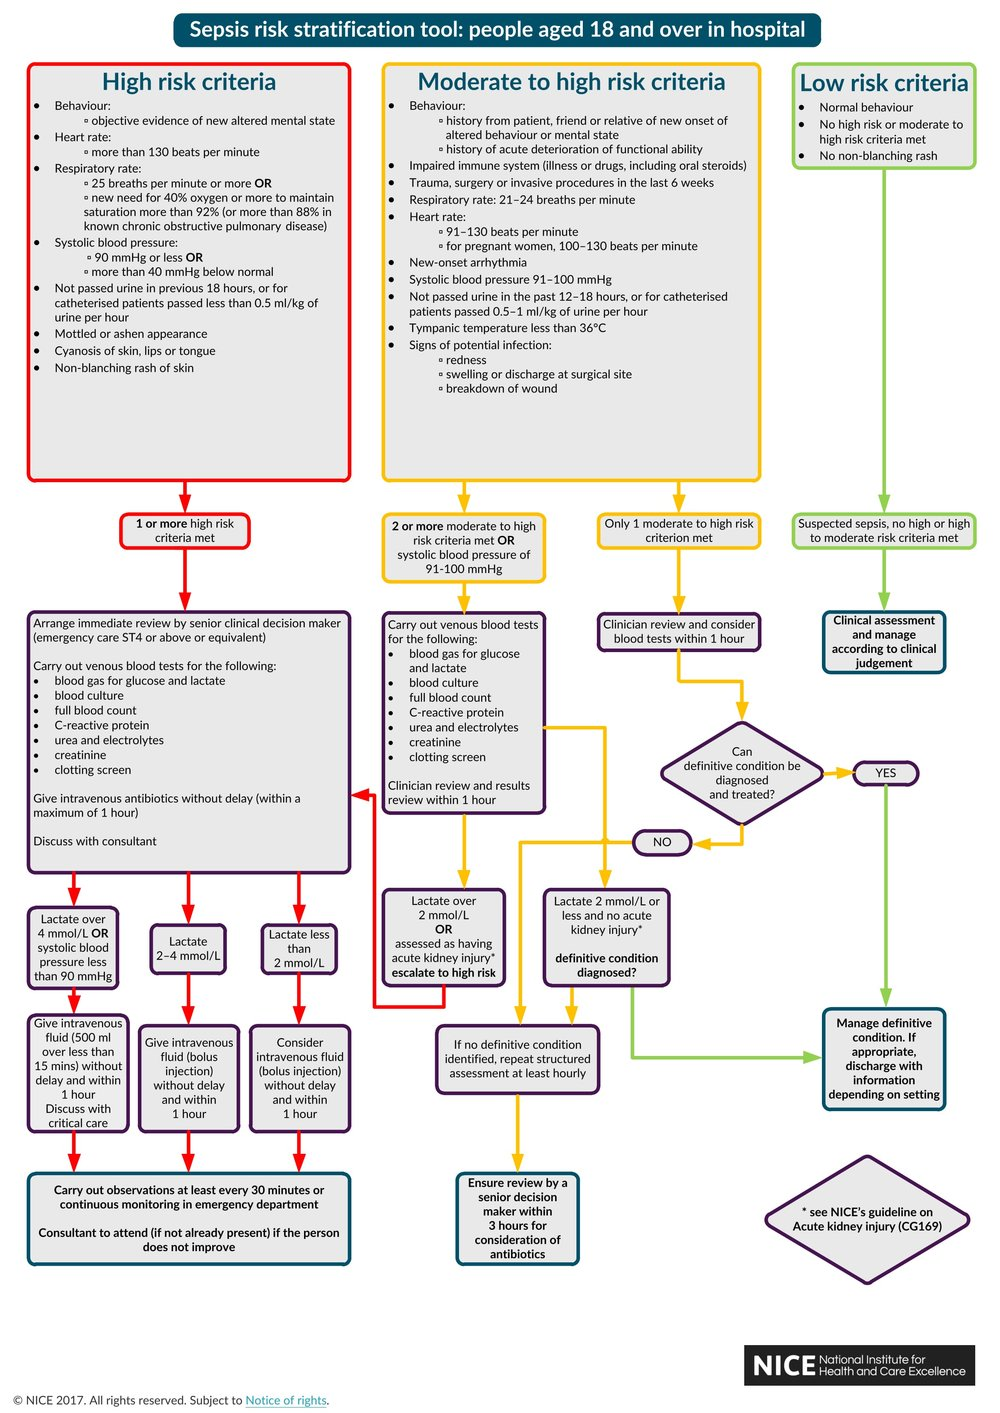 algorithm-for-managing-suspected-sepsis-in-adults-and-young-people-aged-18-years-and-over-in-an-acute-hospital-setting-pdf-2551485715-4.jpg